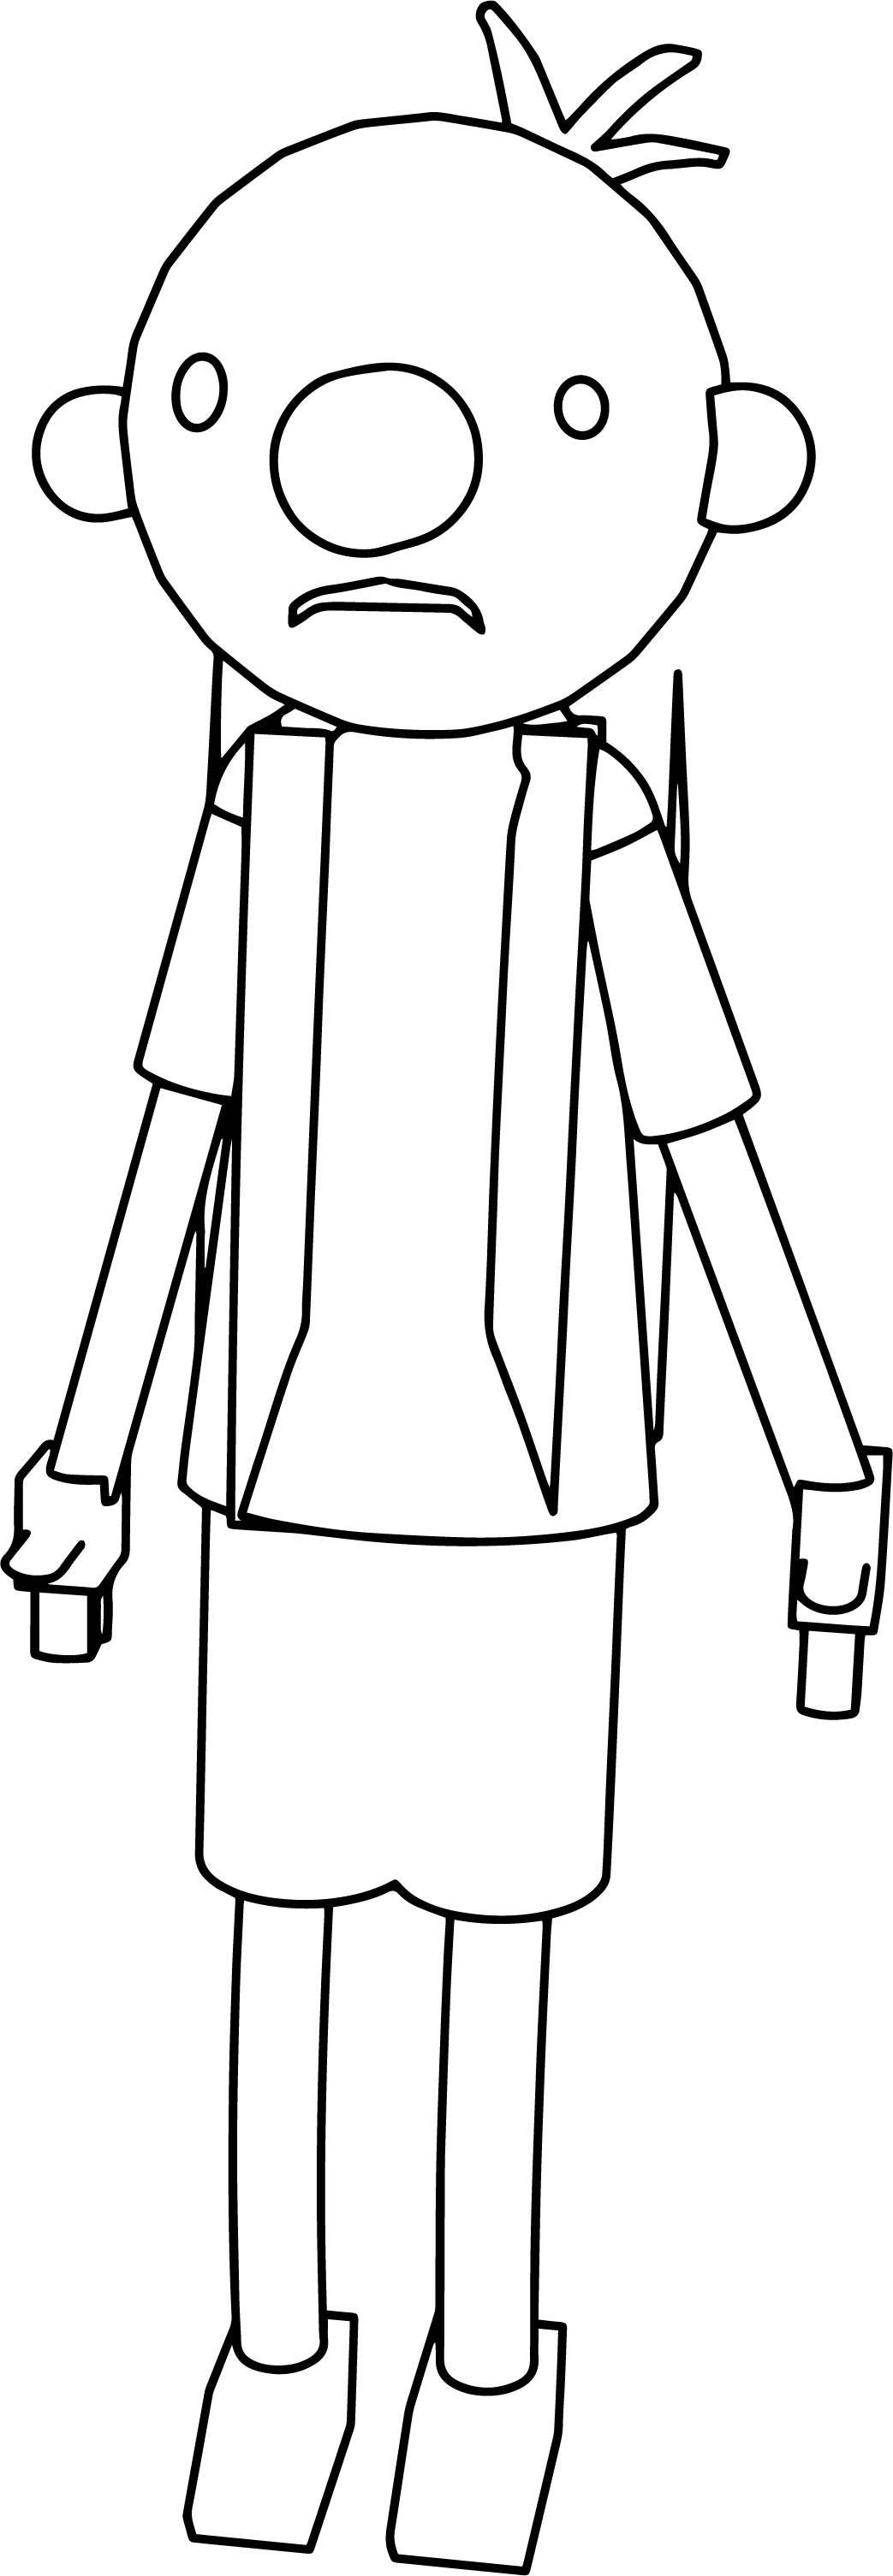 Diary Of A Wimpy Kid Greg Heffley Coloring Page | Wecoloringpage.com